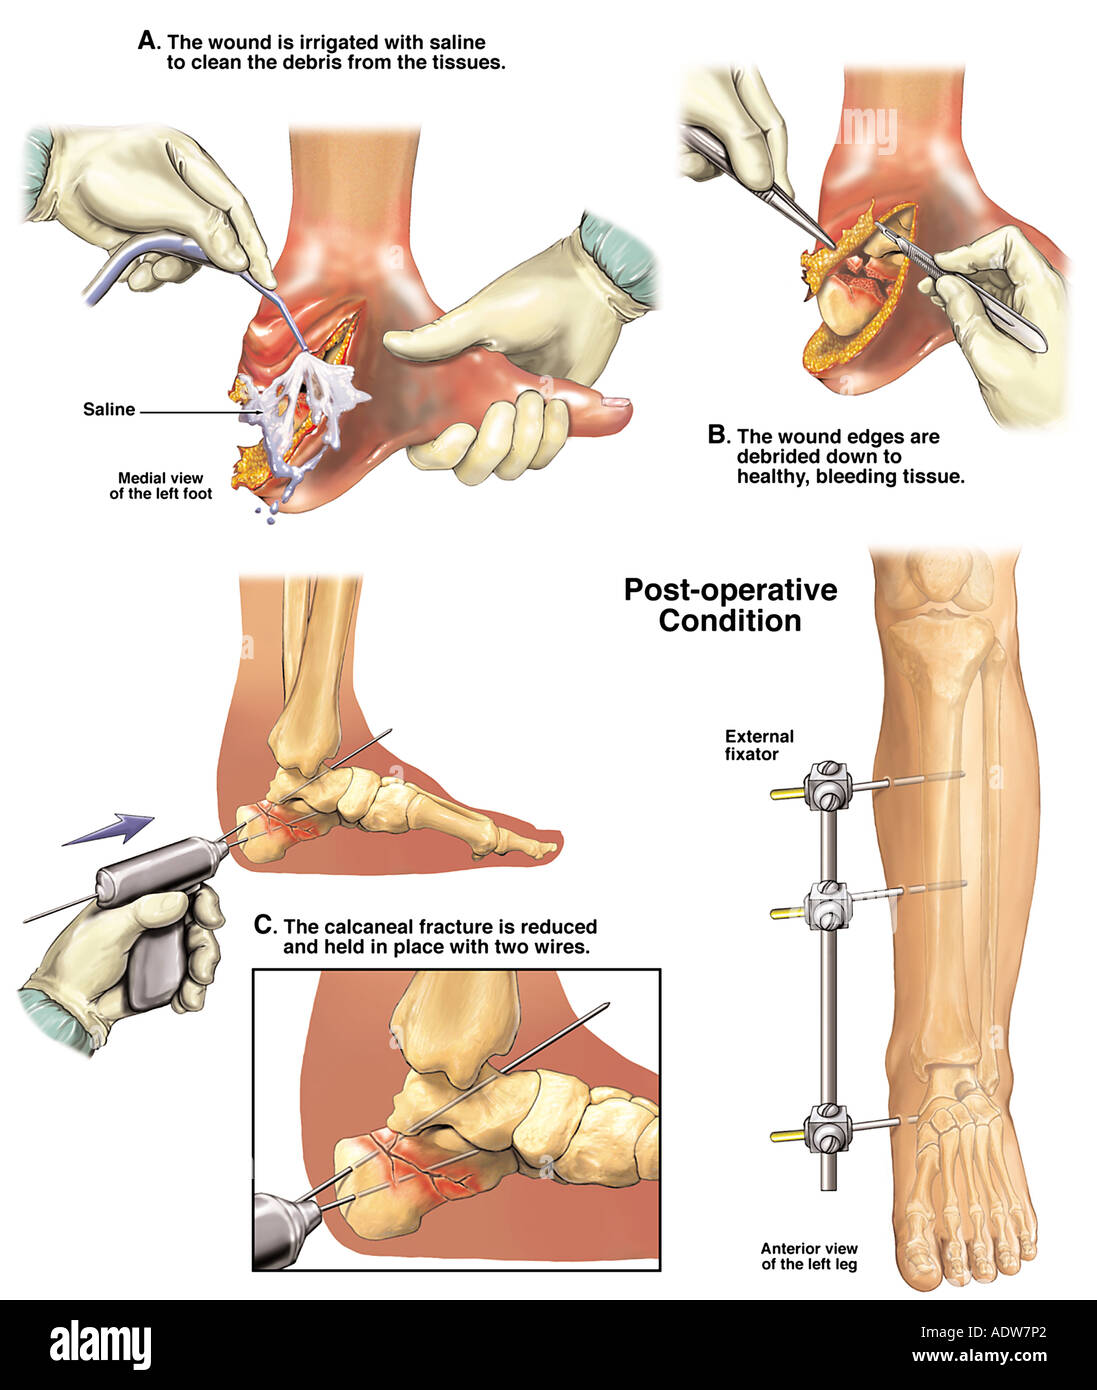 Initial Fixation of the Foot with Placement of External Fixator - Stock Image